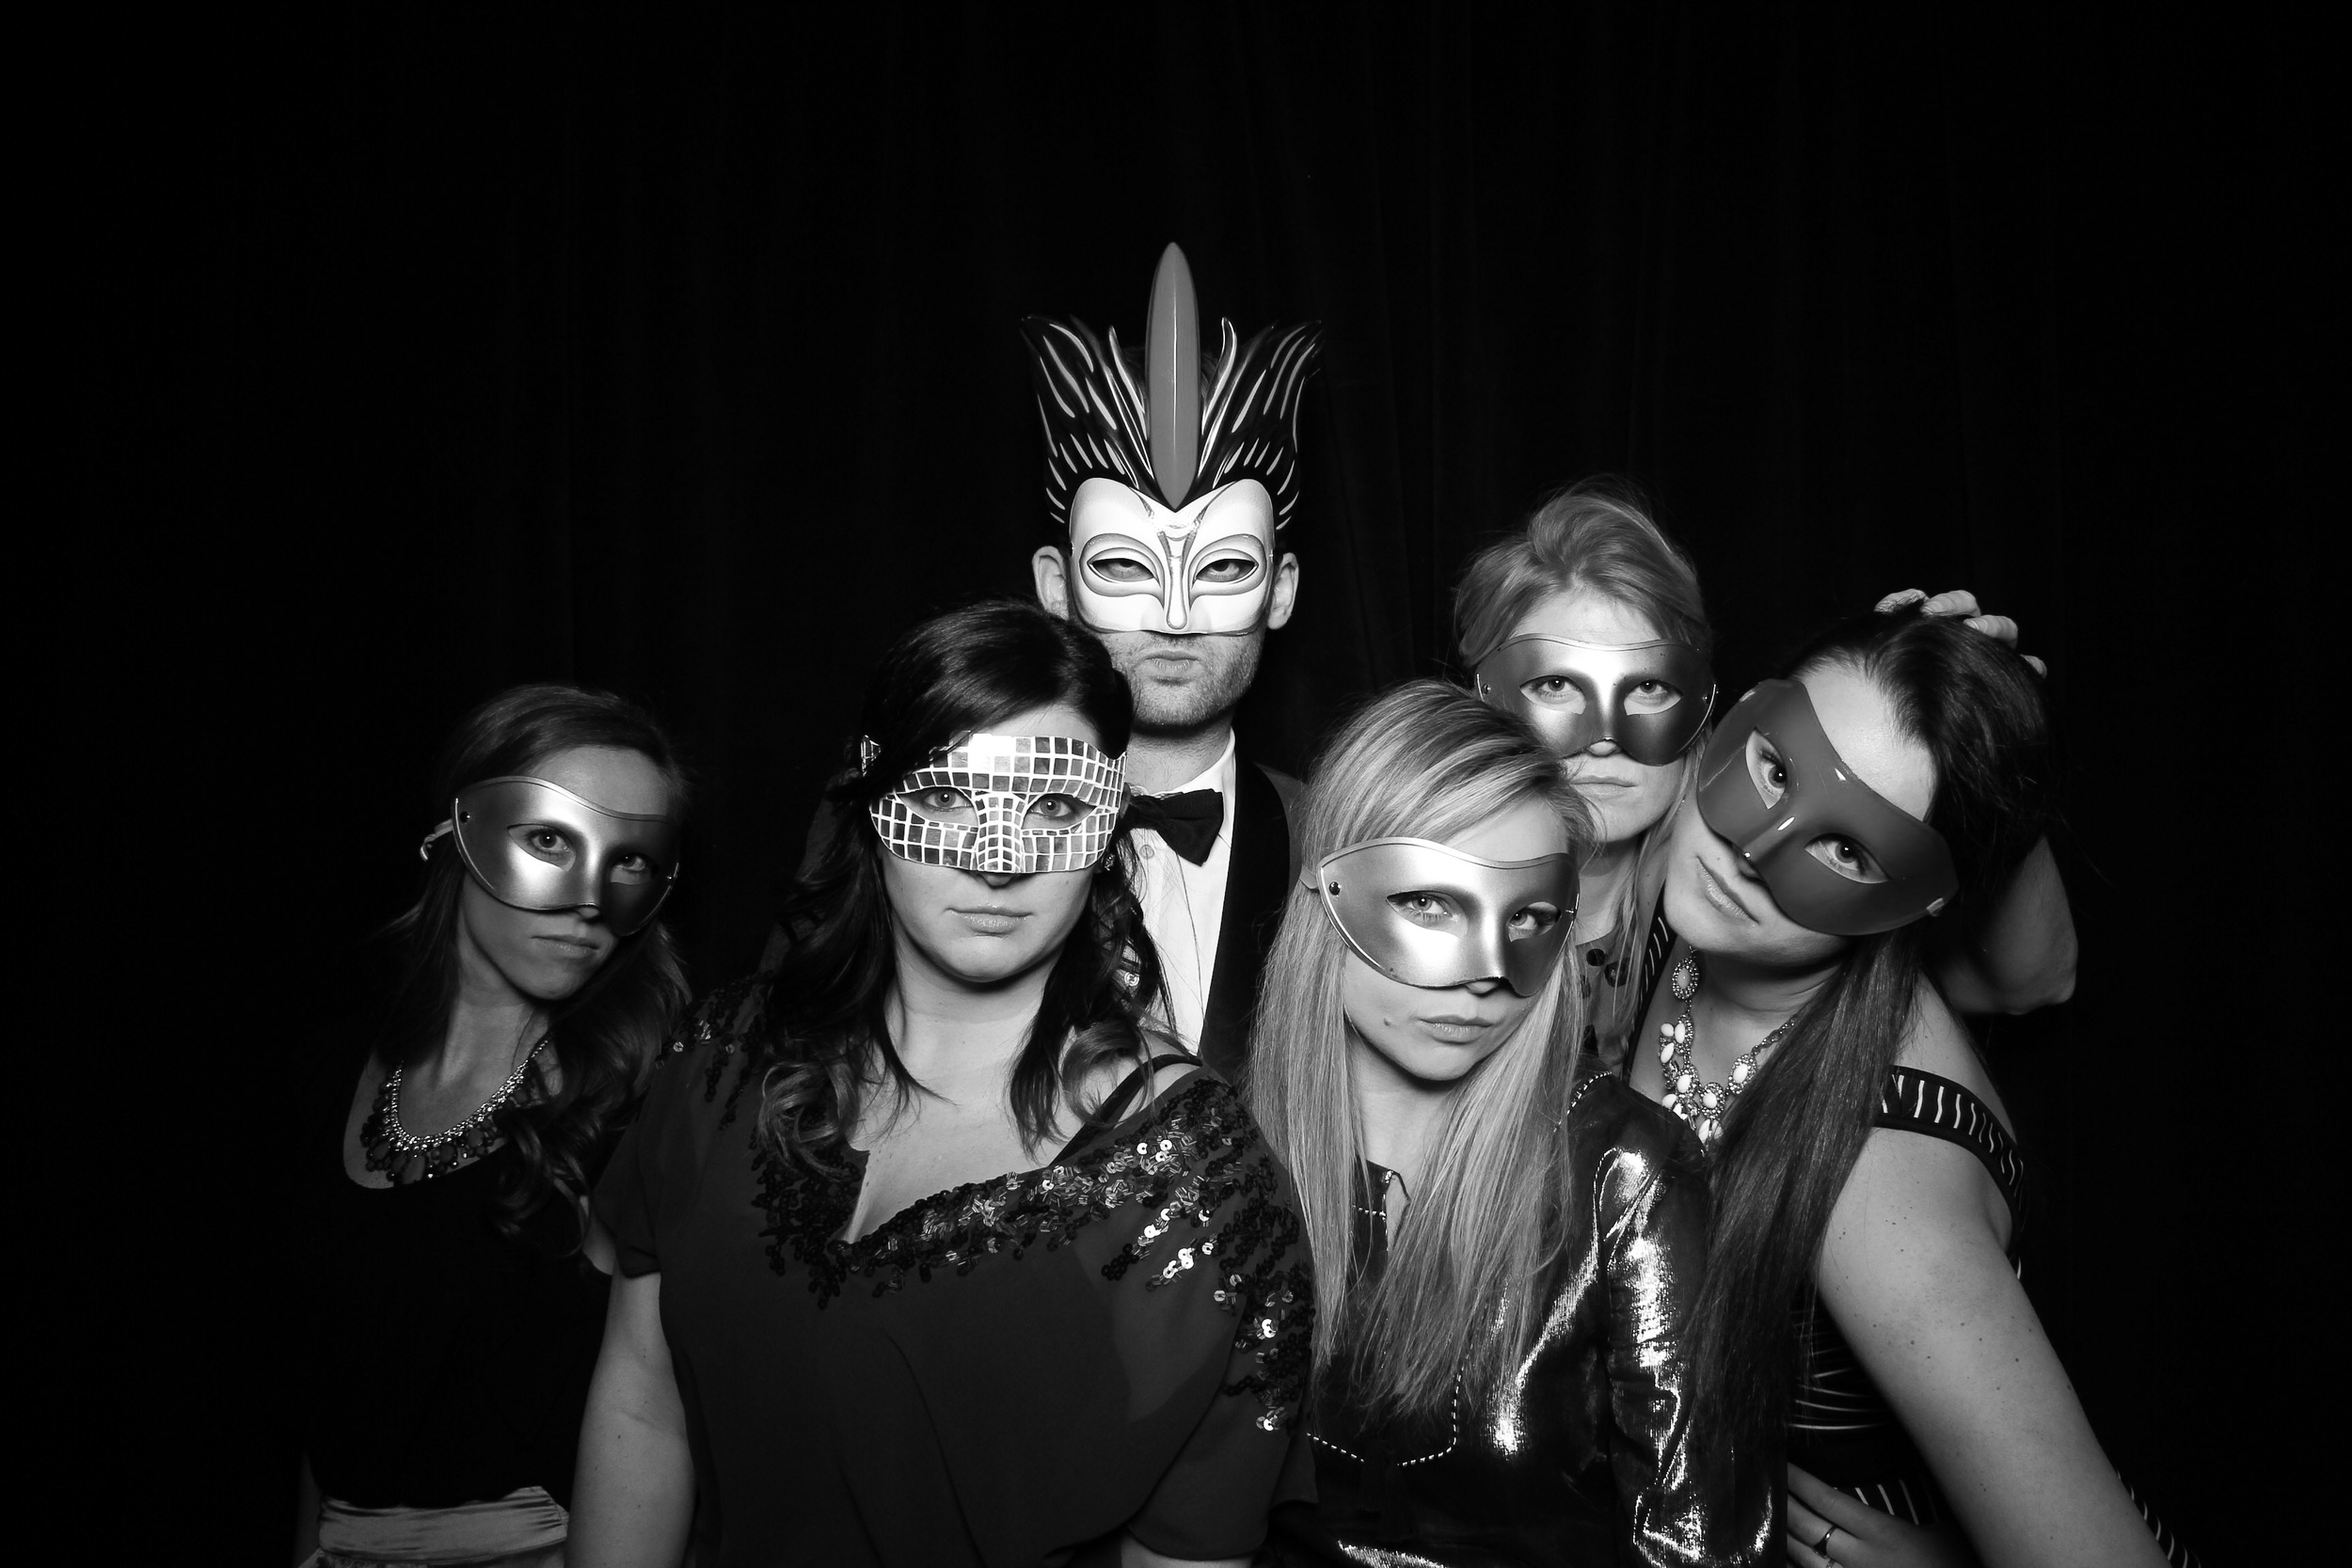 A group masquerade photo booth shot with the black draped velvet at Venue One.